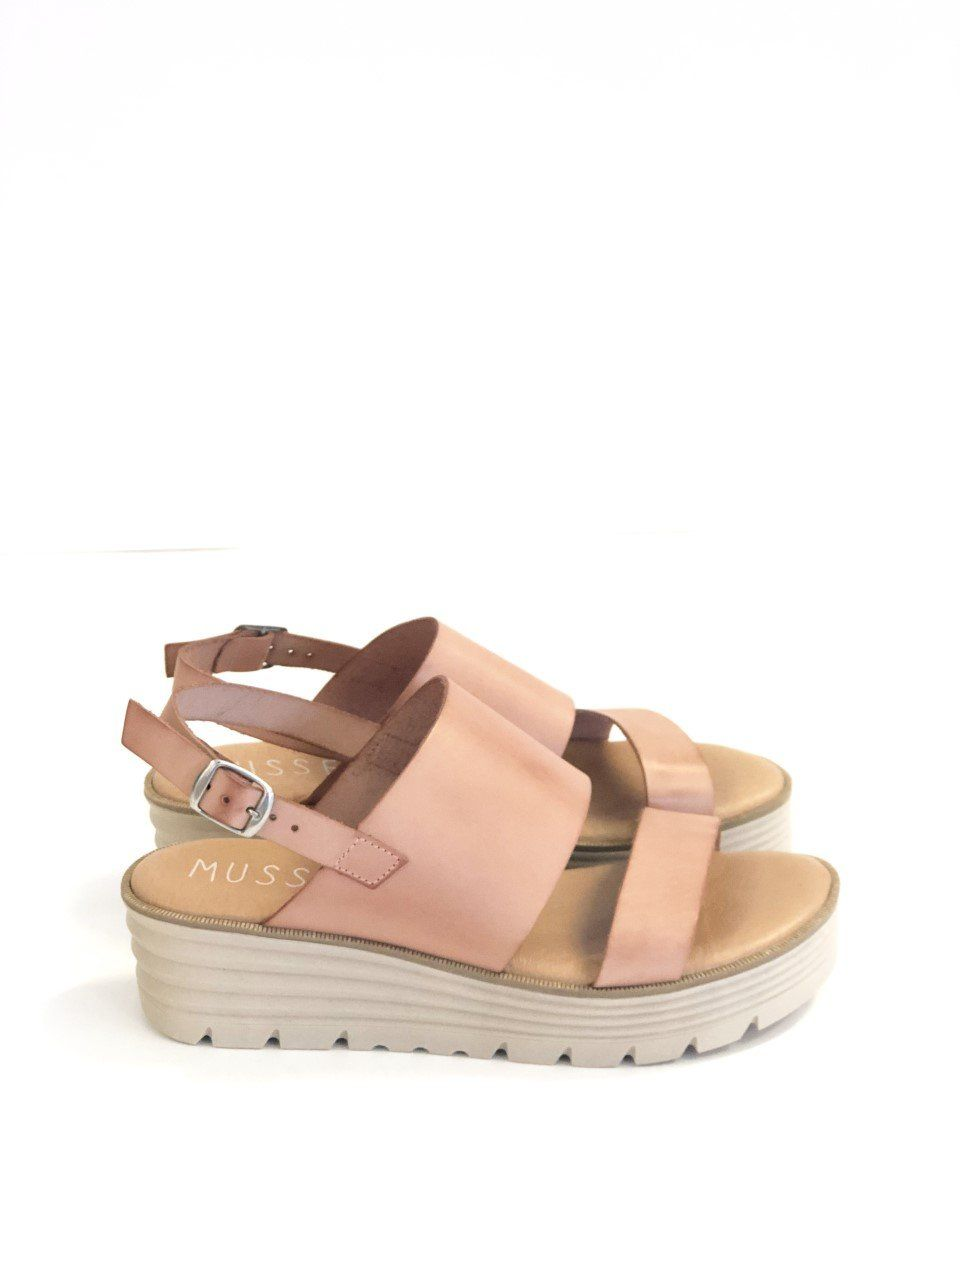 Flavia Platform Sandal in natural by Musse & Cloud | Sandals